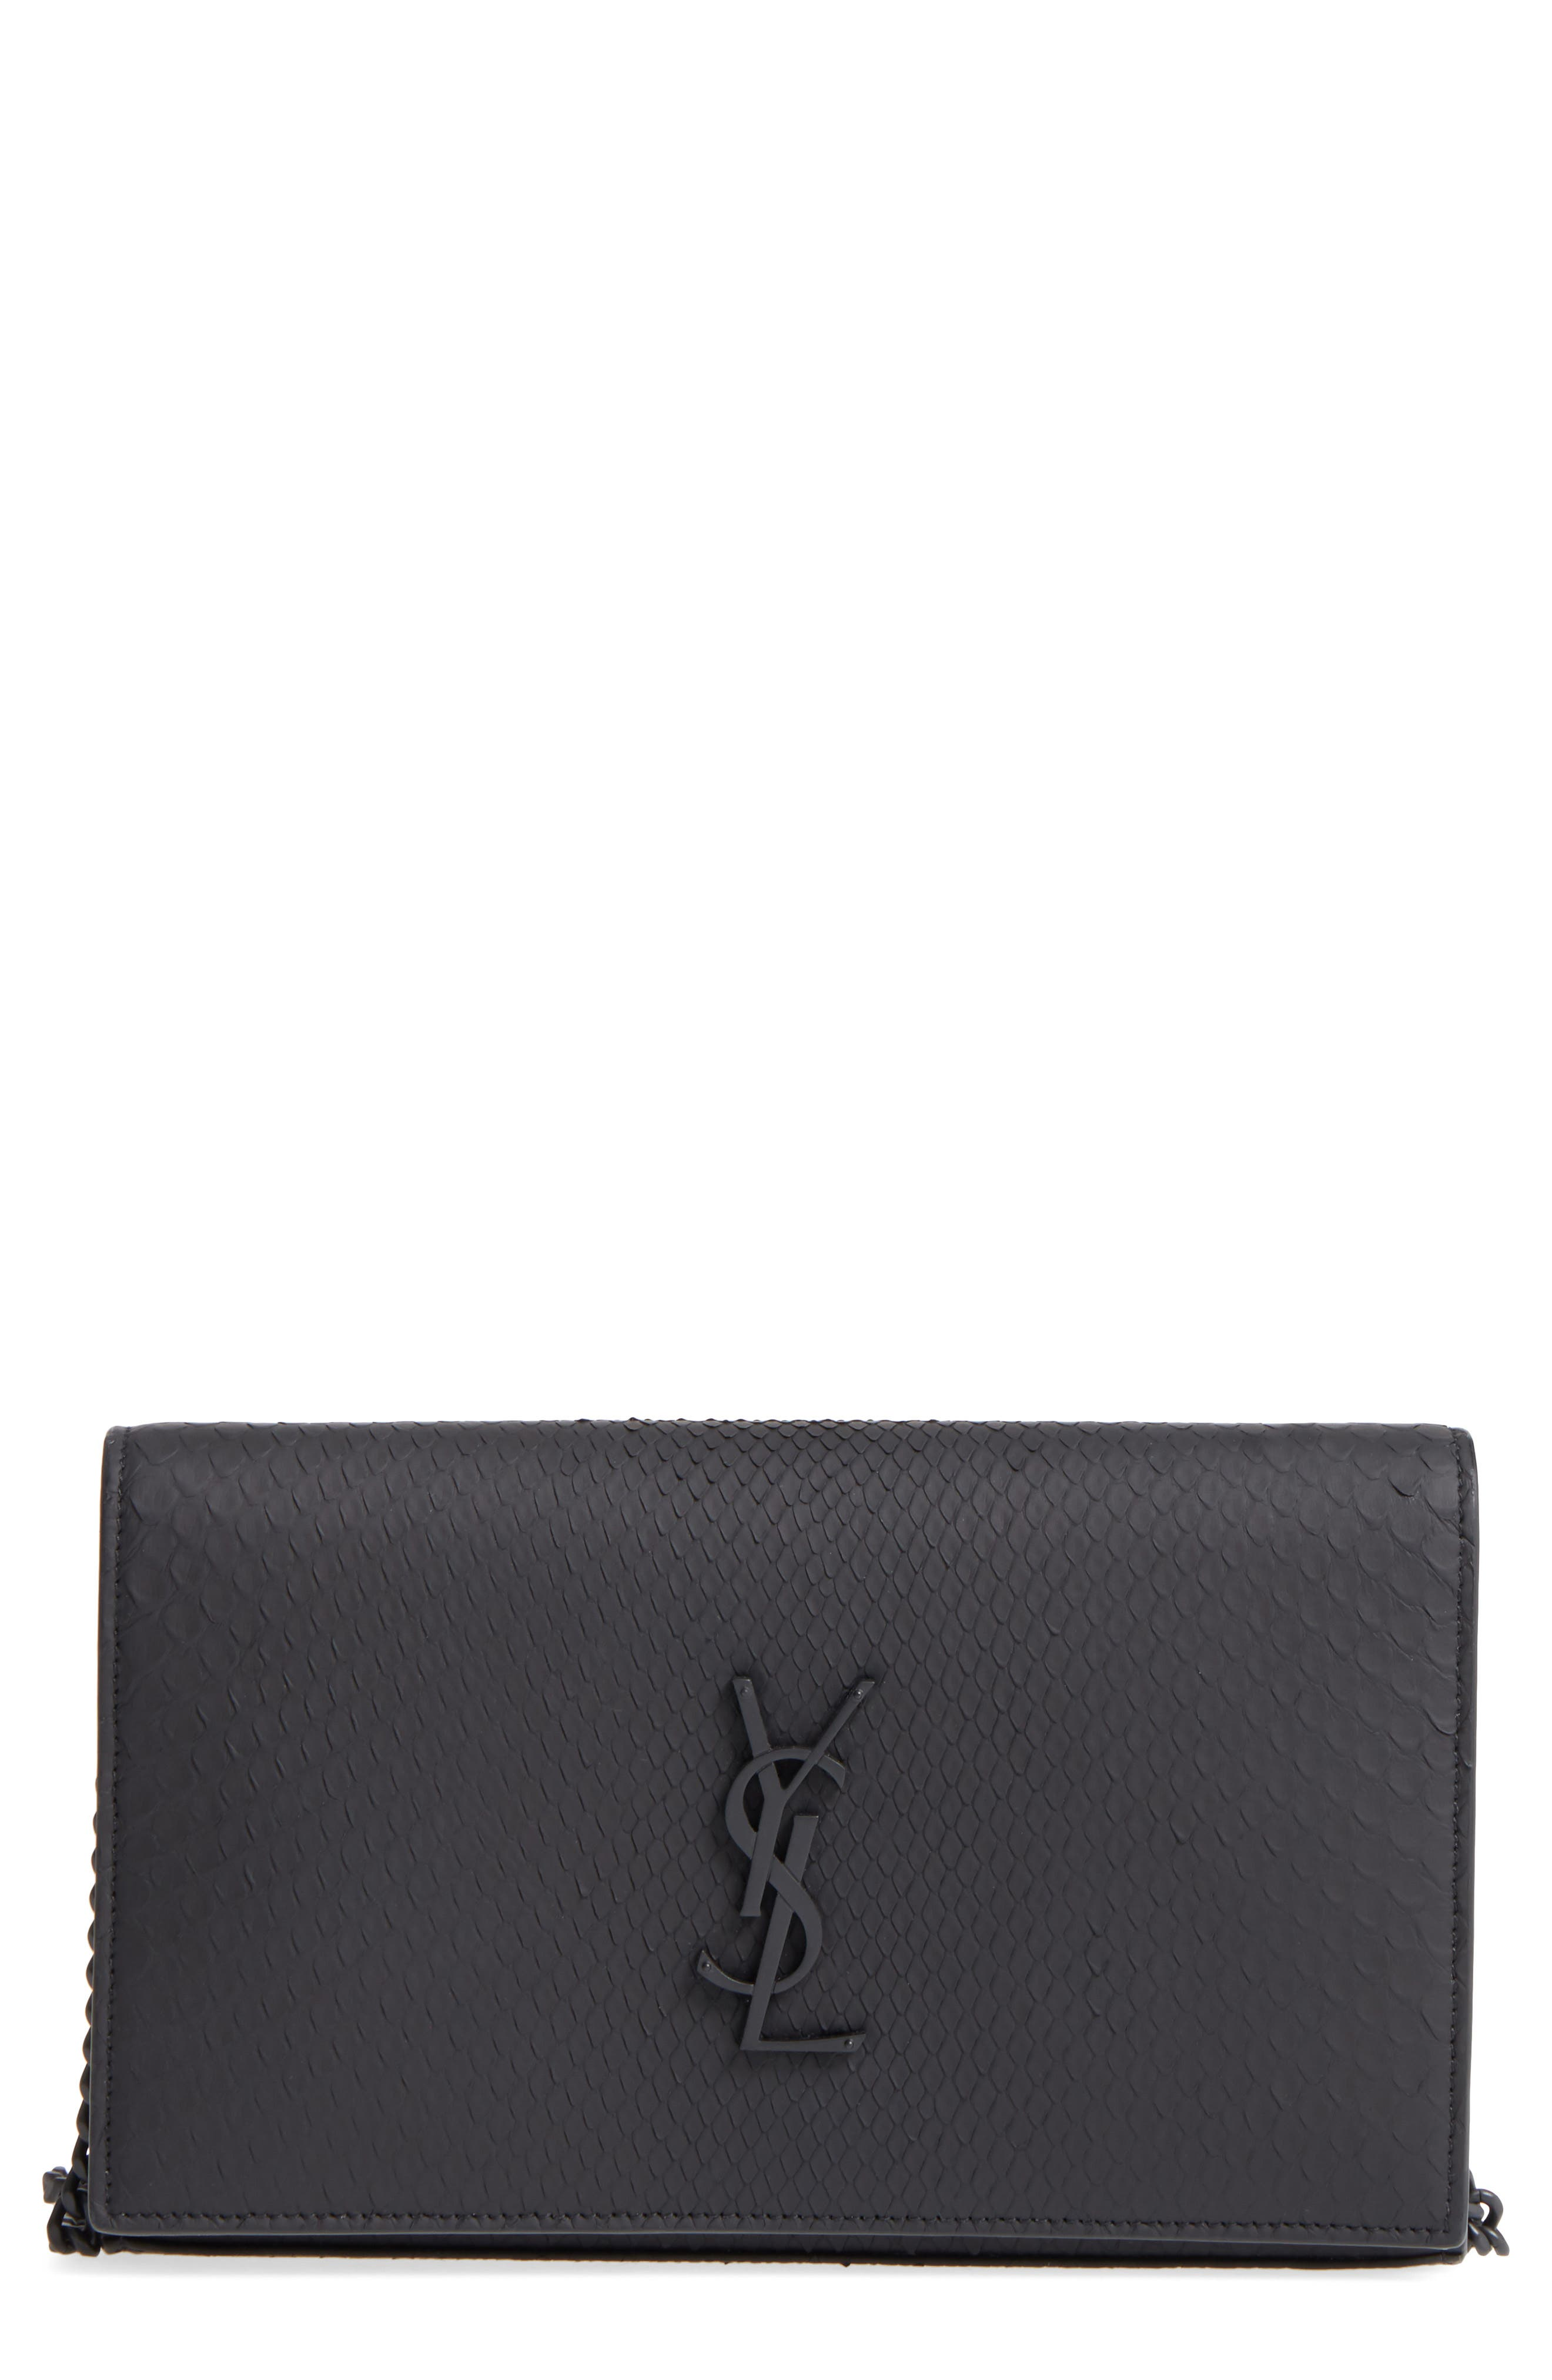 Main Image - Saint Laurent Monogram Genuine Python Wallet on a Chain